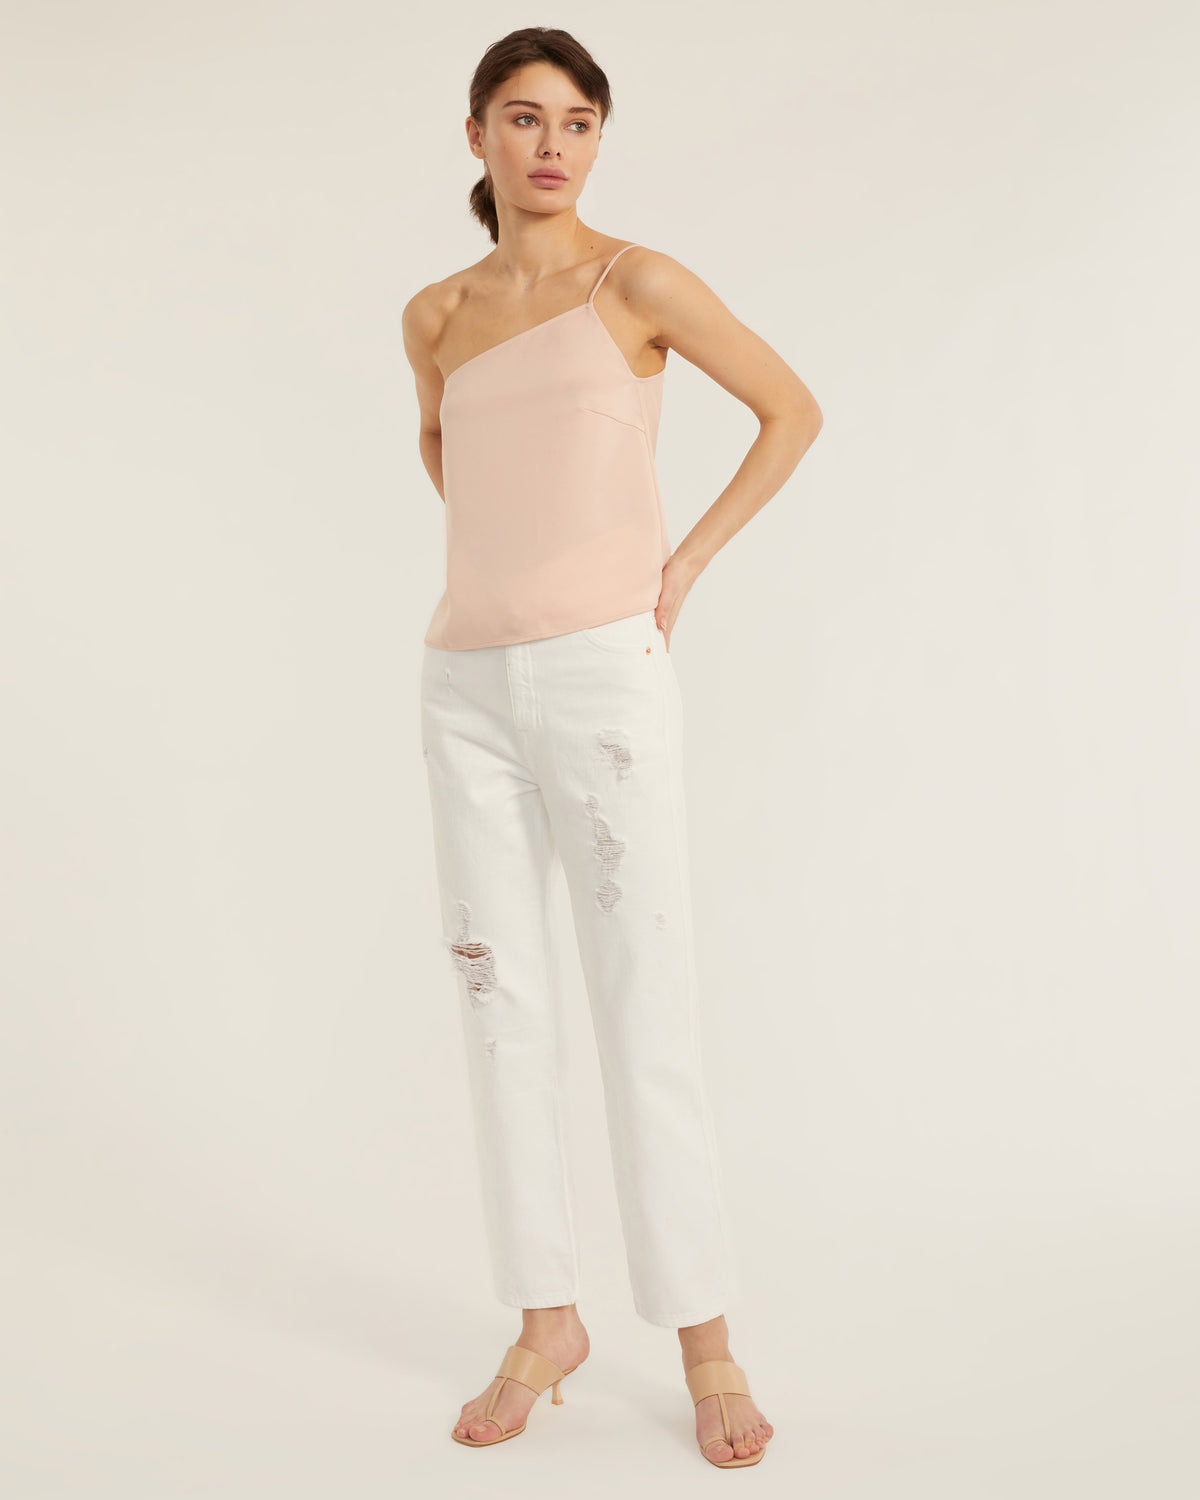 Quinn One Shoulder Satin Crepe Camisole in Blush